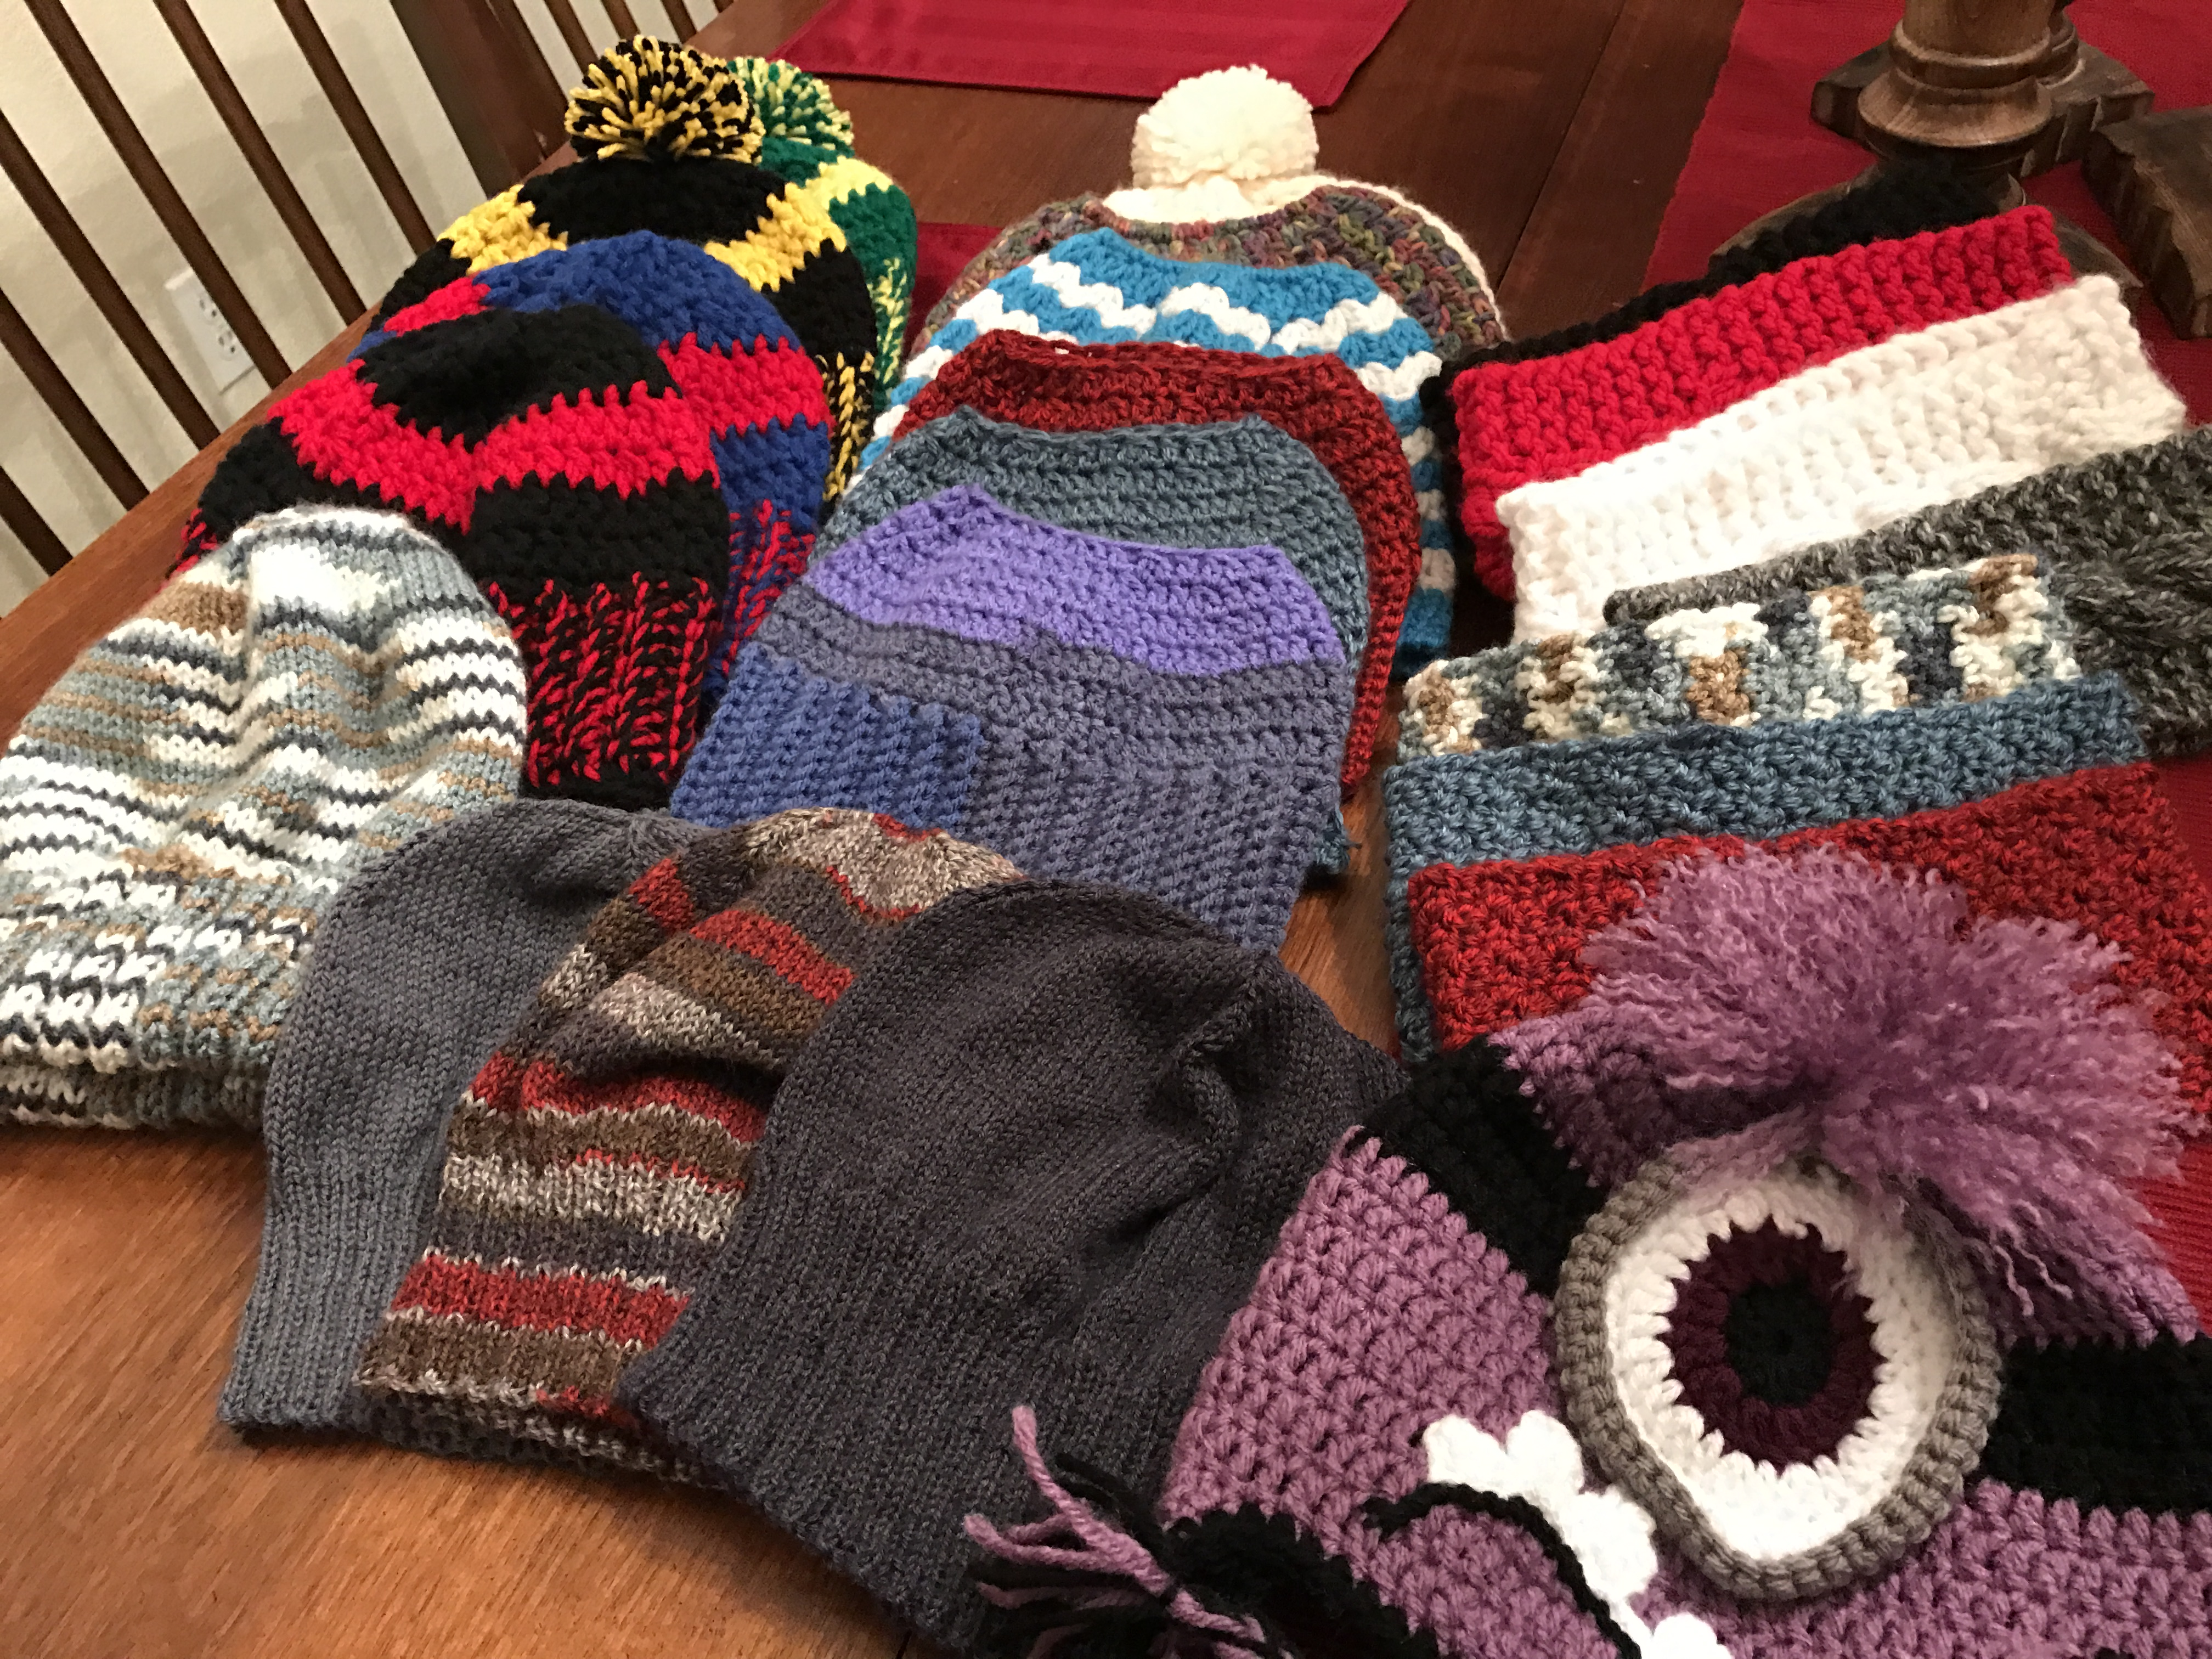 Hats and more hats!